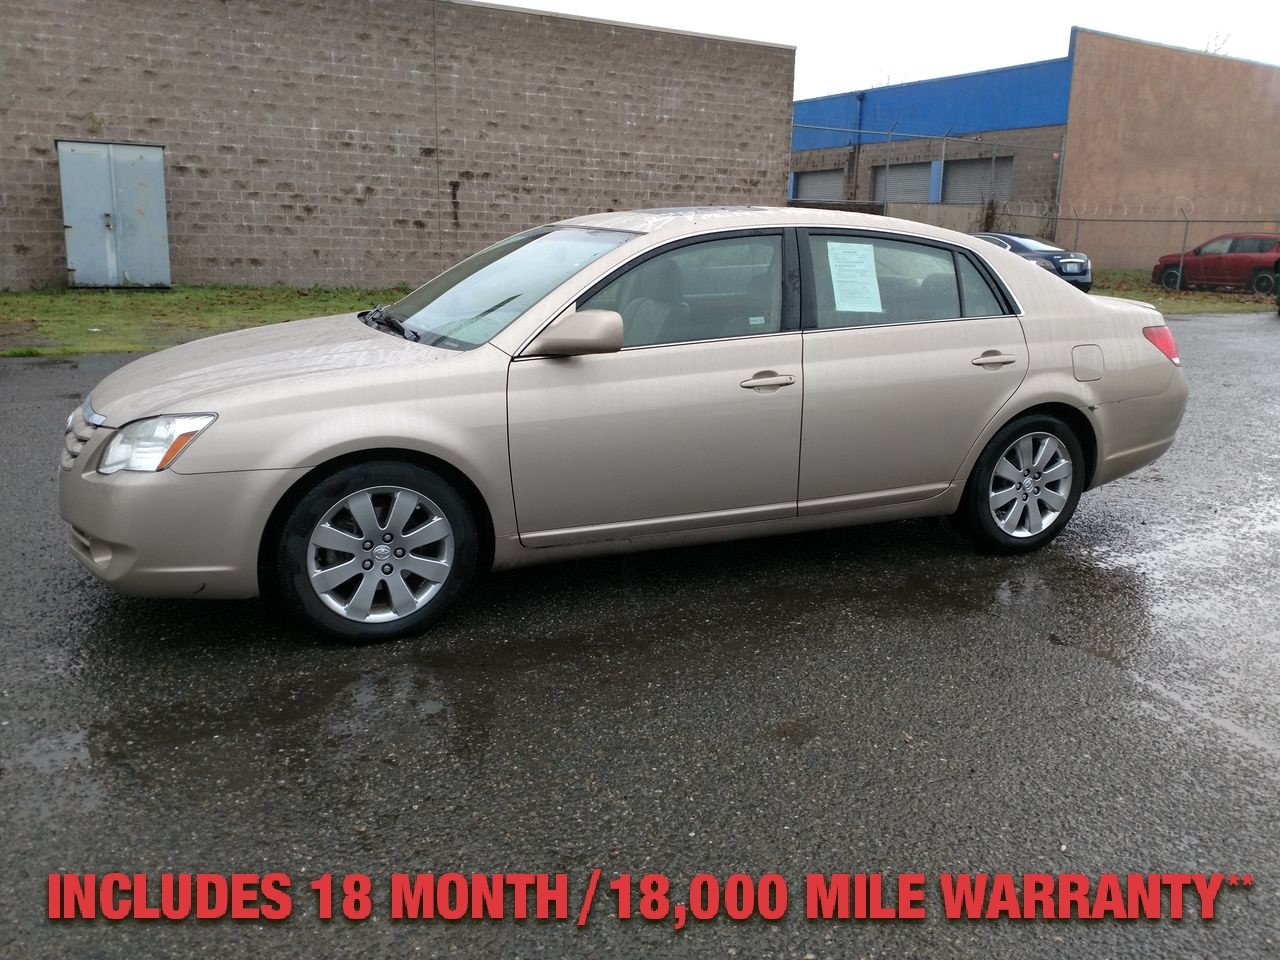 Pre-Owned 2006 TOYOTA AVALON XLS Sedan